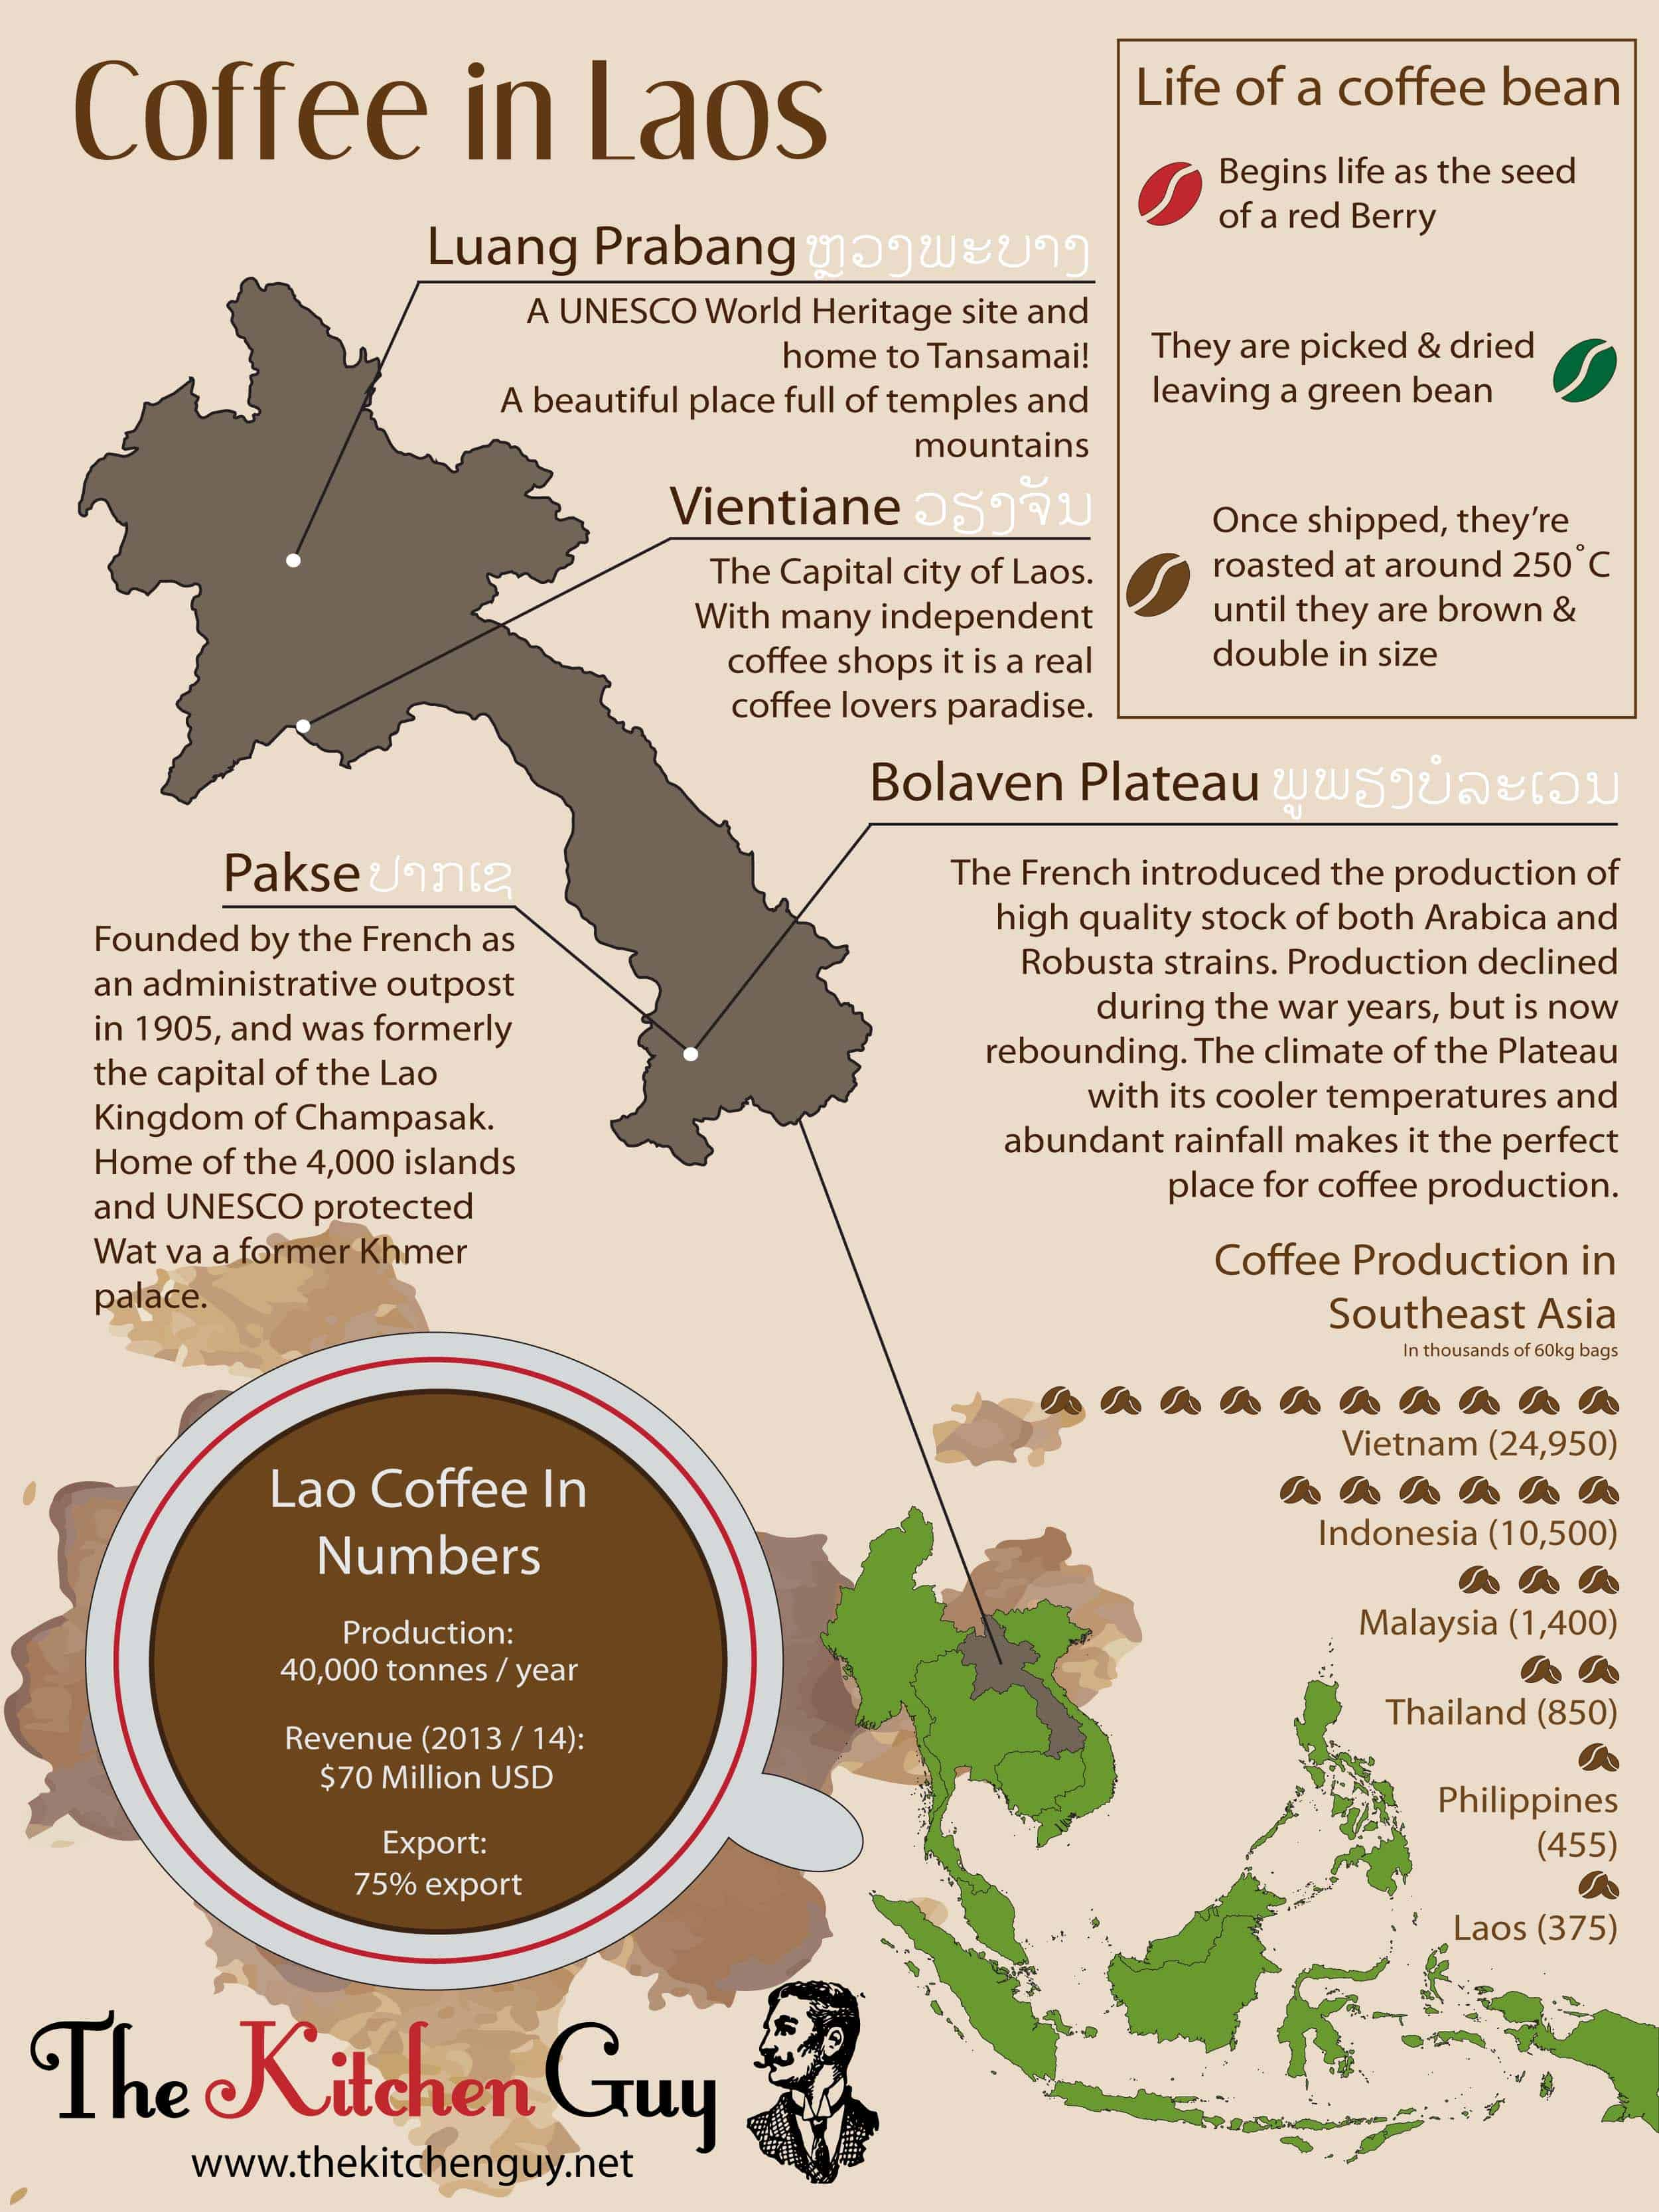 Coffee Production in Laos